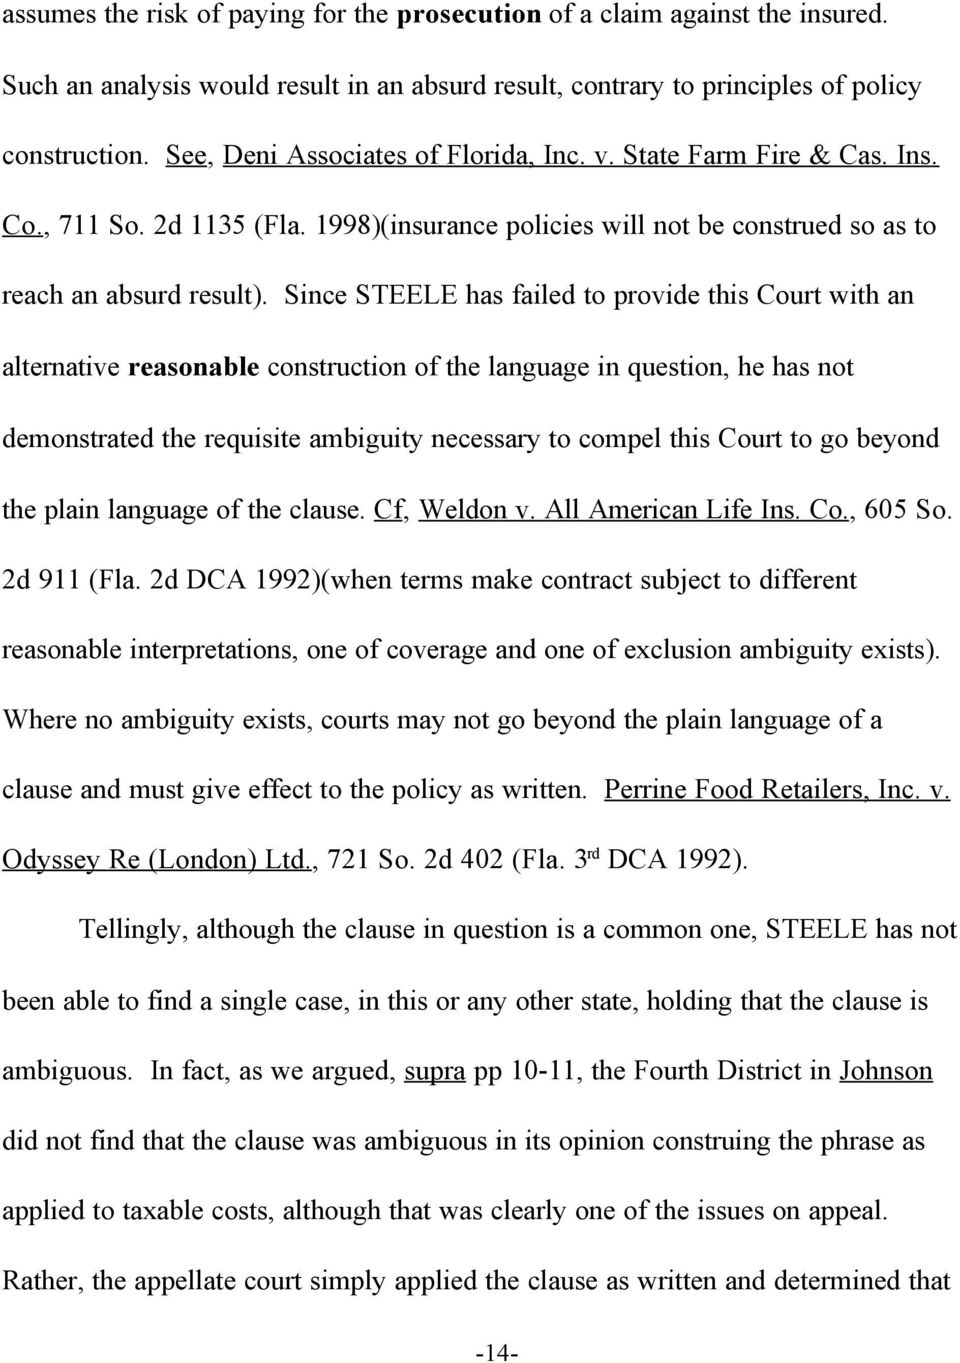 Since STEELE has failed to provide this Court with an alternative reasonable construction of the language in question, he has not demonstrated the requisite ambiguity necessary to compel this Court